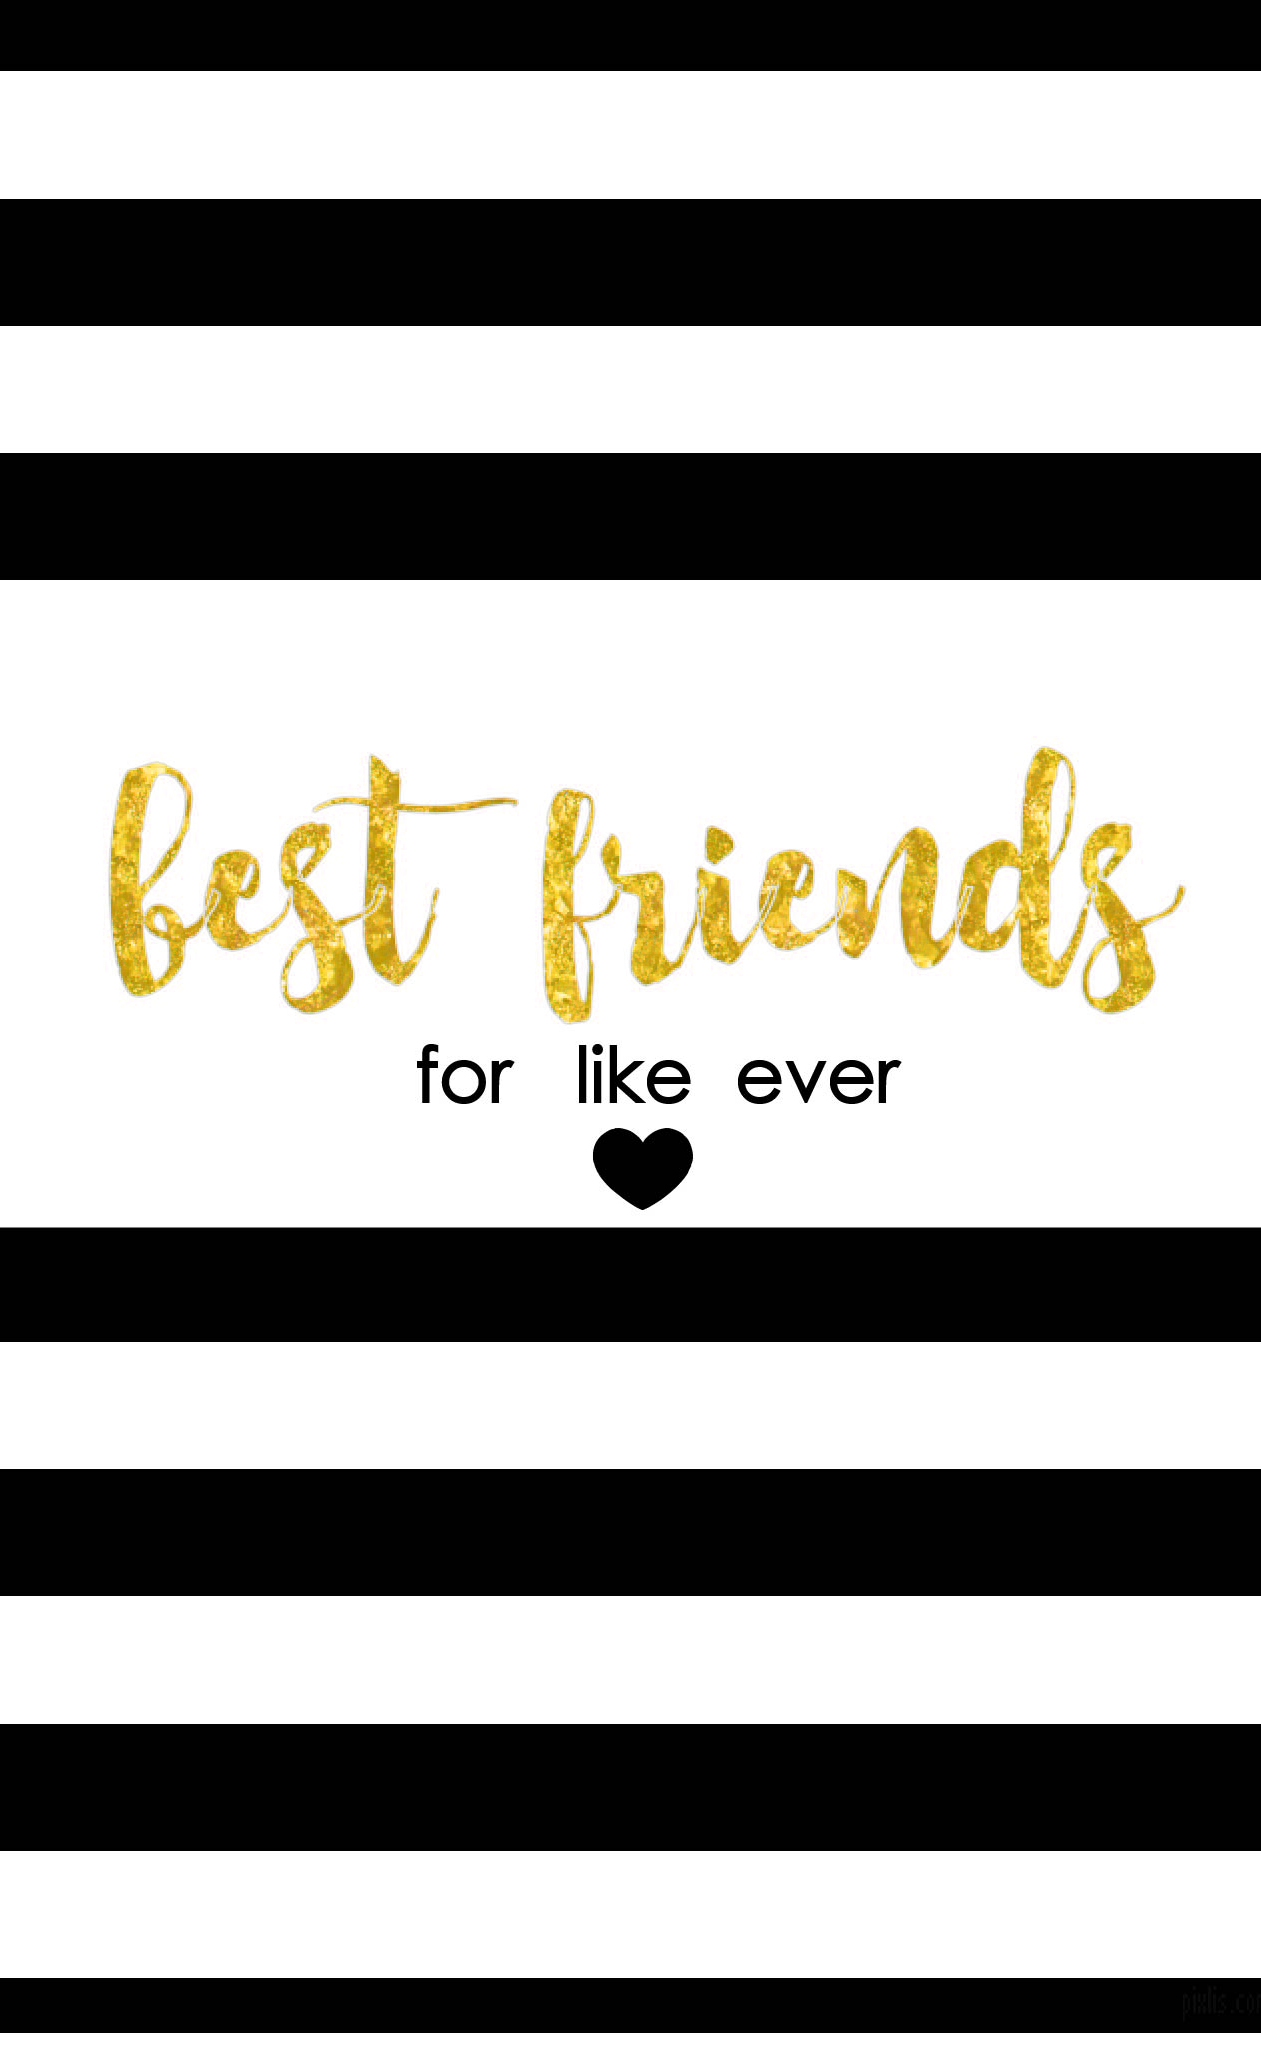 Best Friends Like For Ever Free Printable from Frosted Events | frostedevents.com